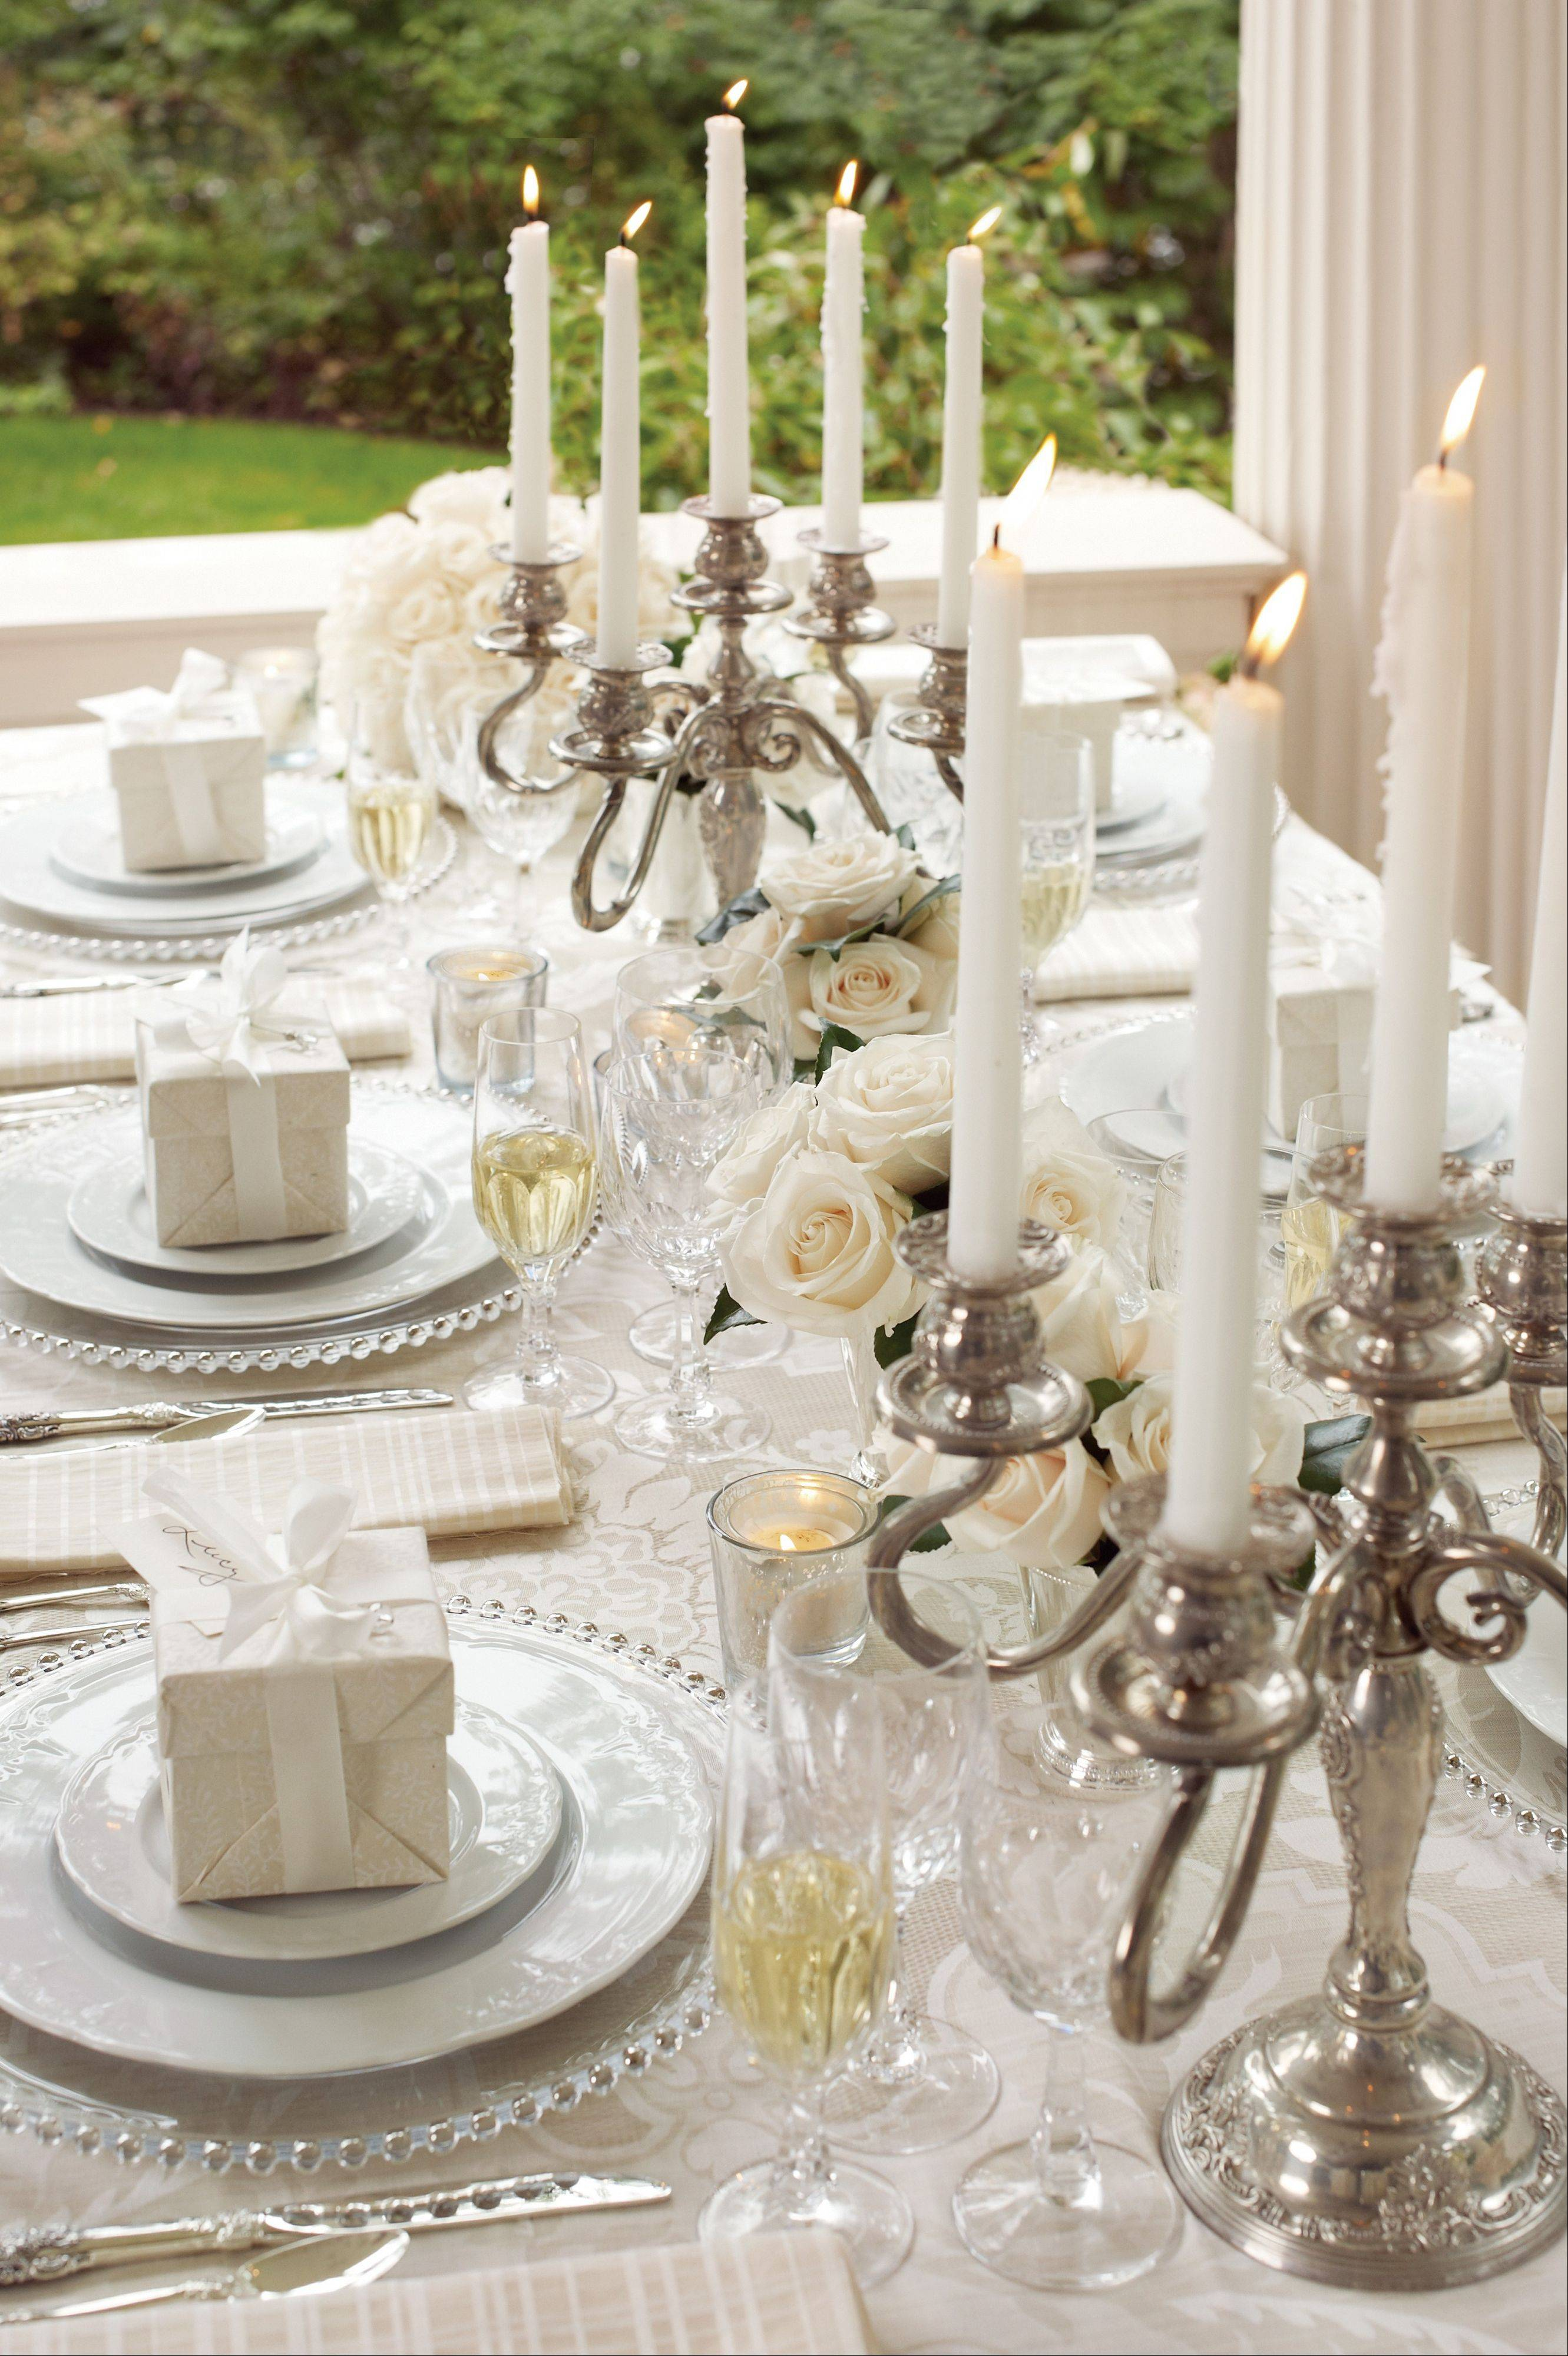 Monica Pedersen started with a damask called Kilfane for the tablecloth when designing this wedding table.